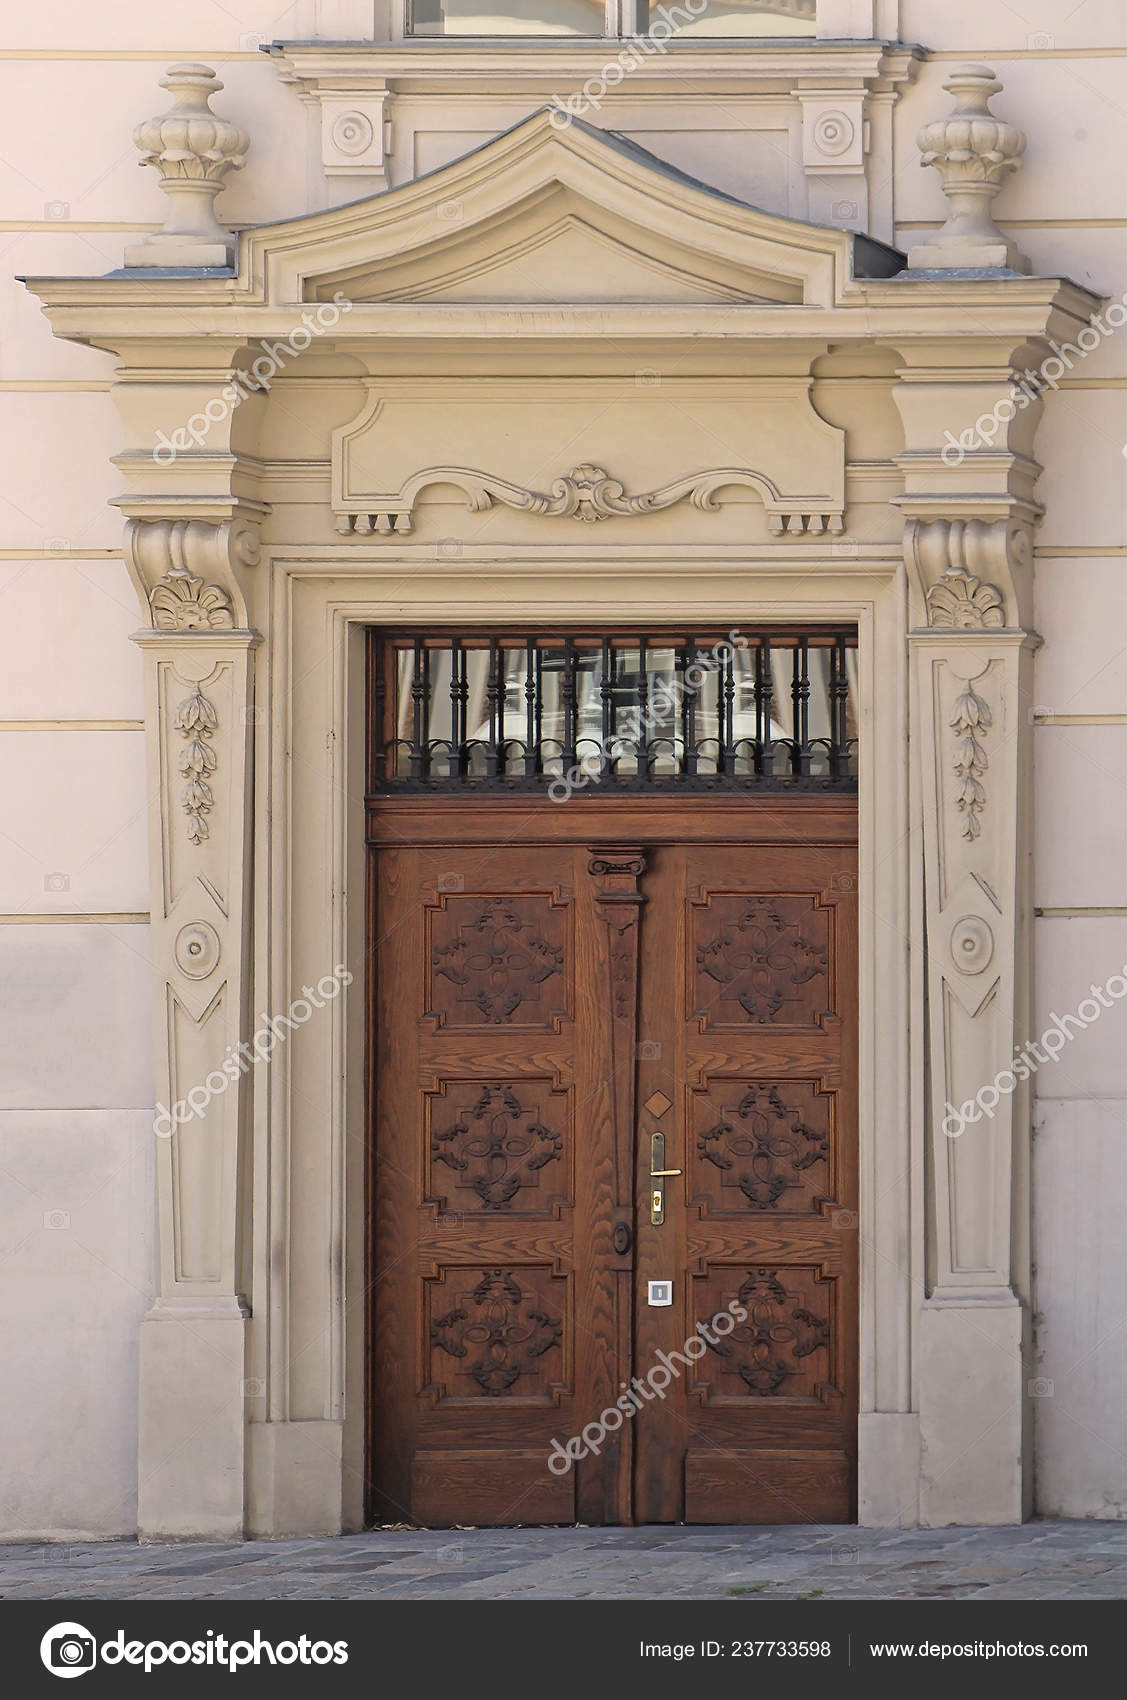 Vintage Wooden Closed Entrance Door Decorative Stone Facade